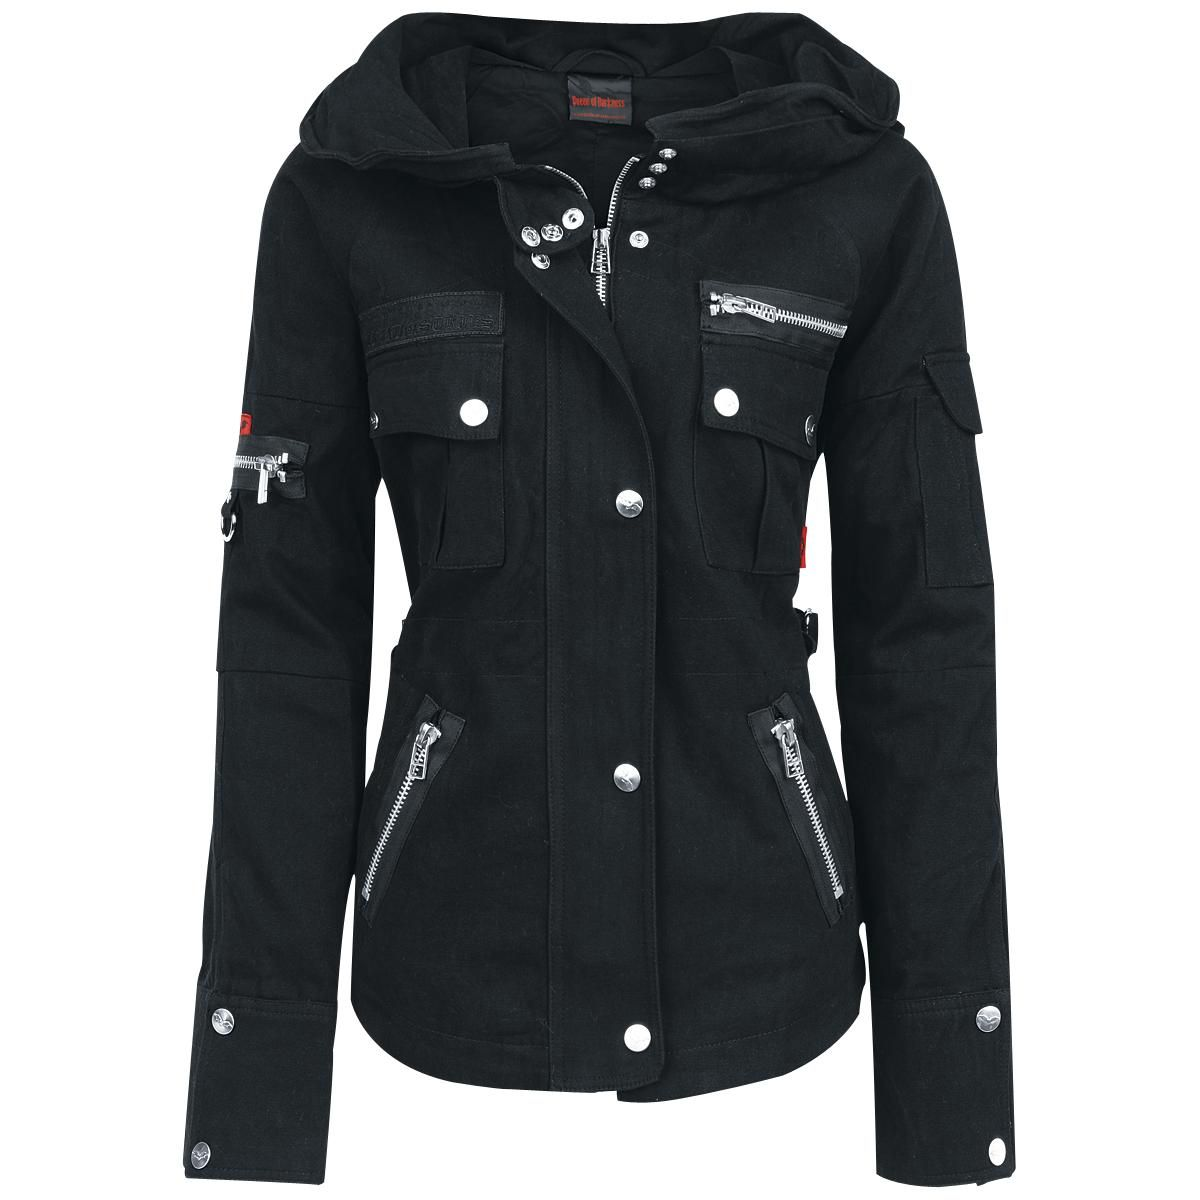 Zipper covered by a row of buttons, the front of the jacket is decorated by buttons and zippers. Length approx. 64 cm